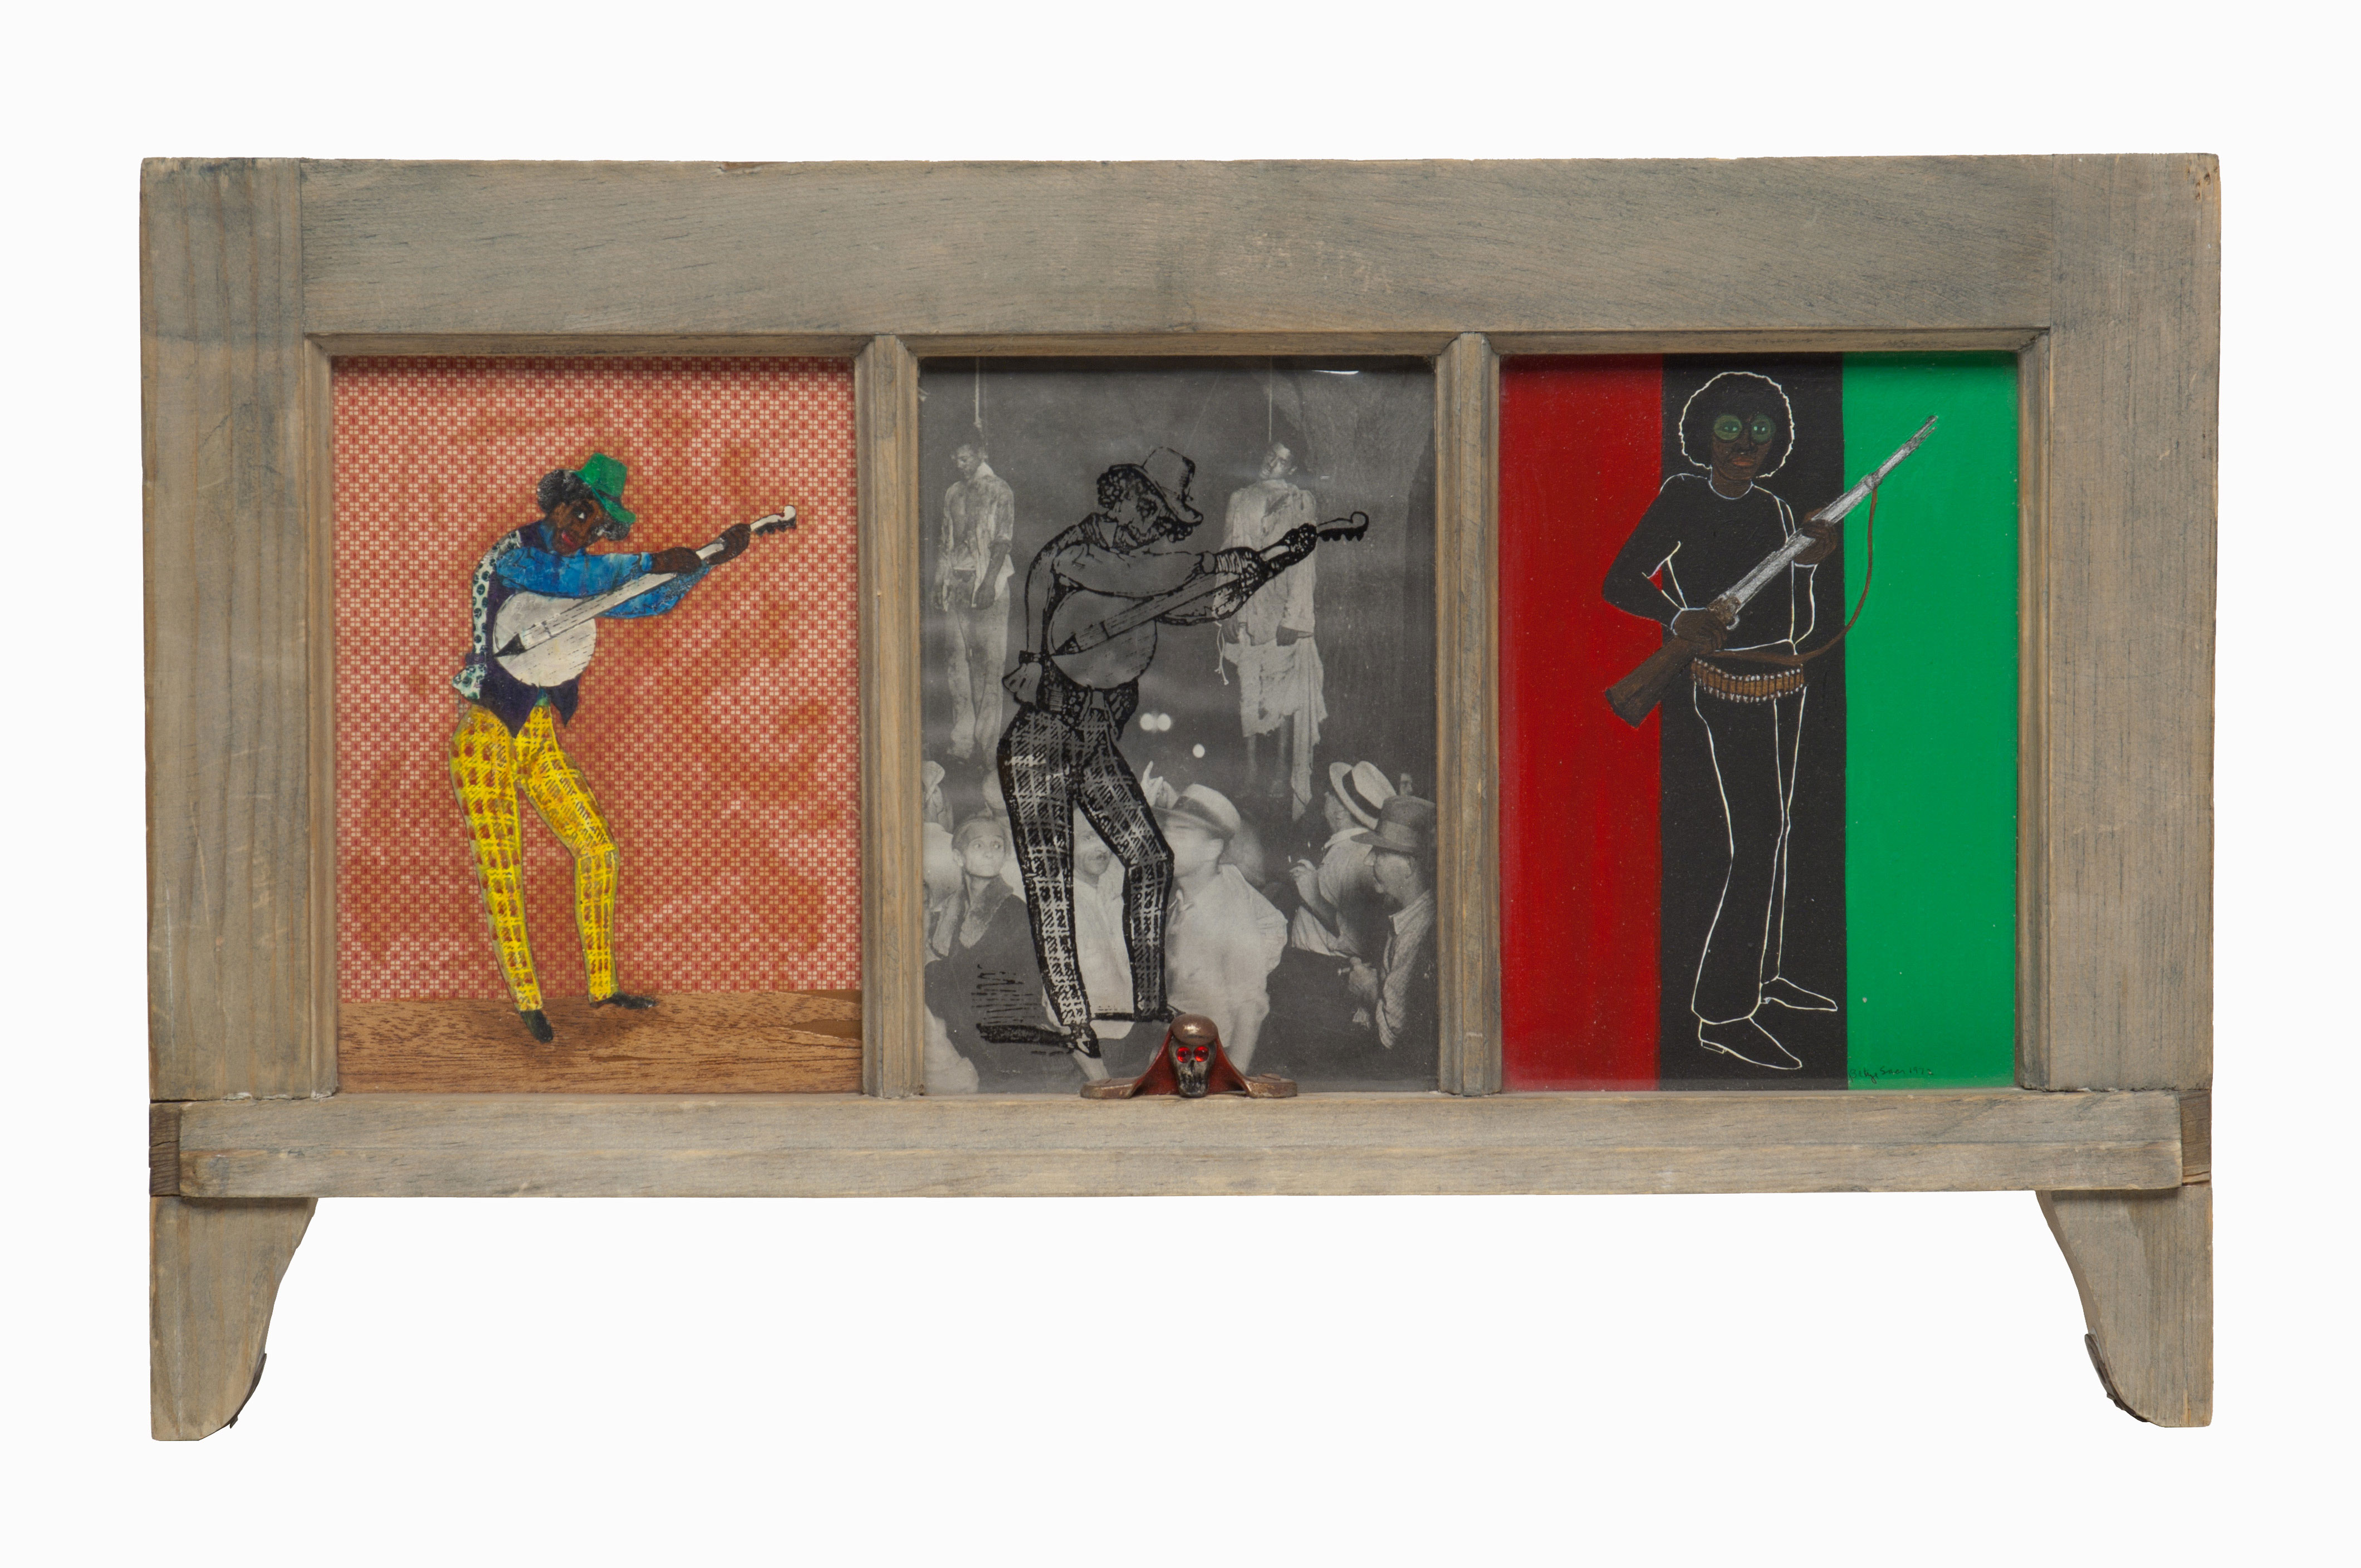 Let Me Entertain You, by Betye Saar, 1972